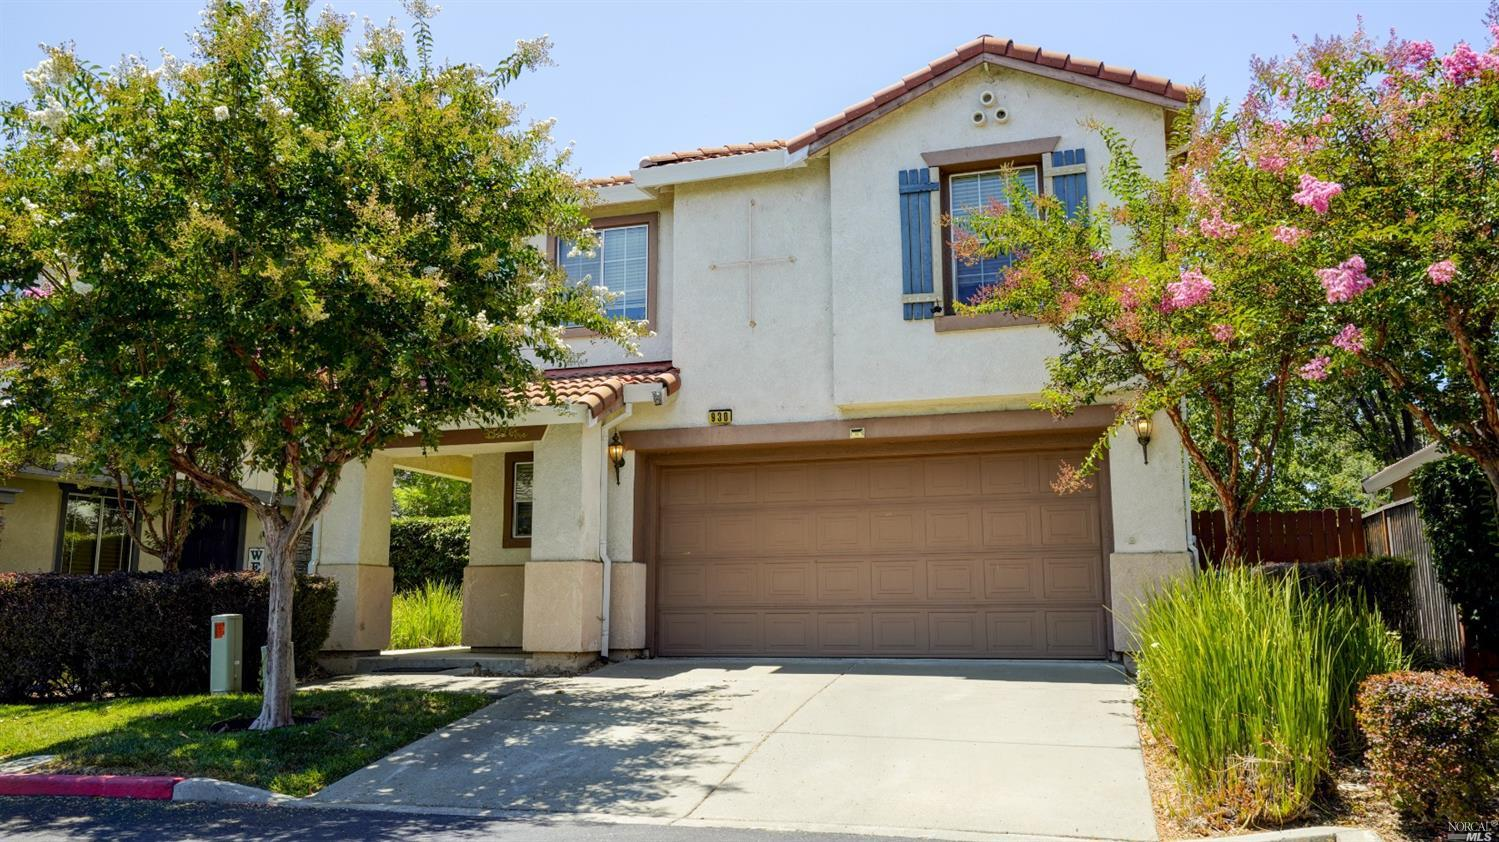 Solar OWNED and is included. Sample Low PG&E bills attached.  What A Beautiful home in a wonderful c